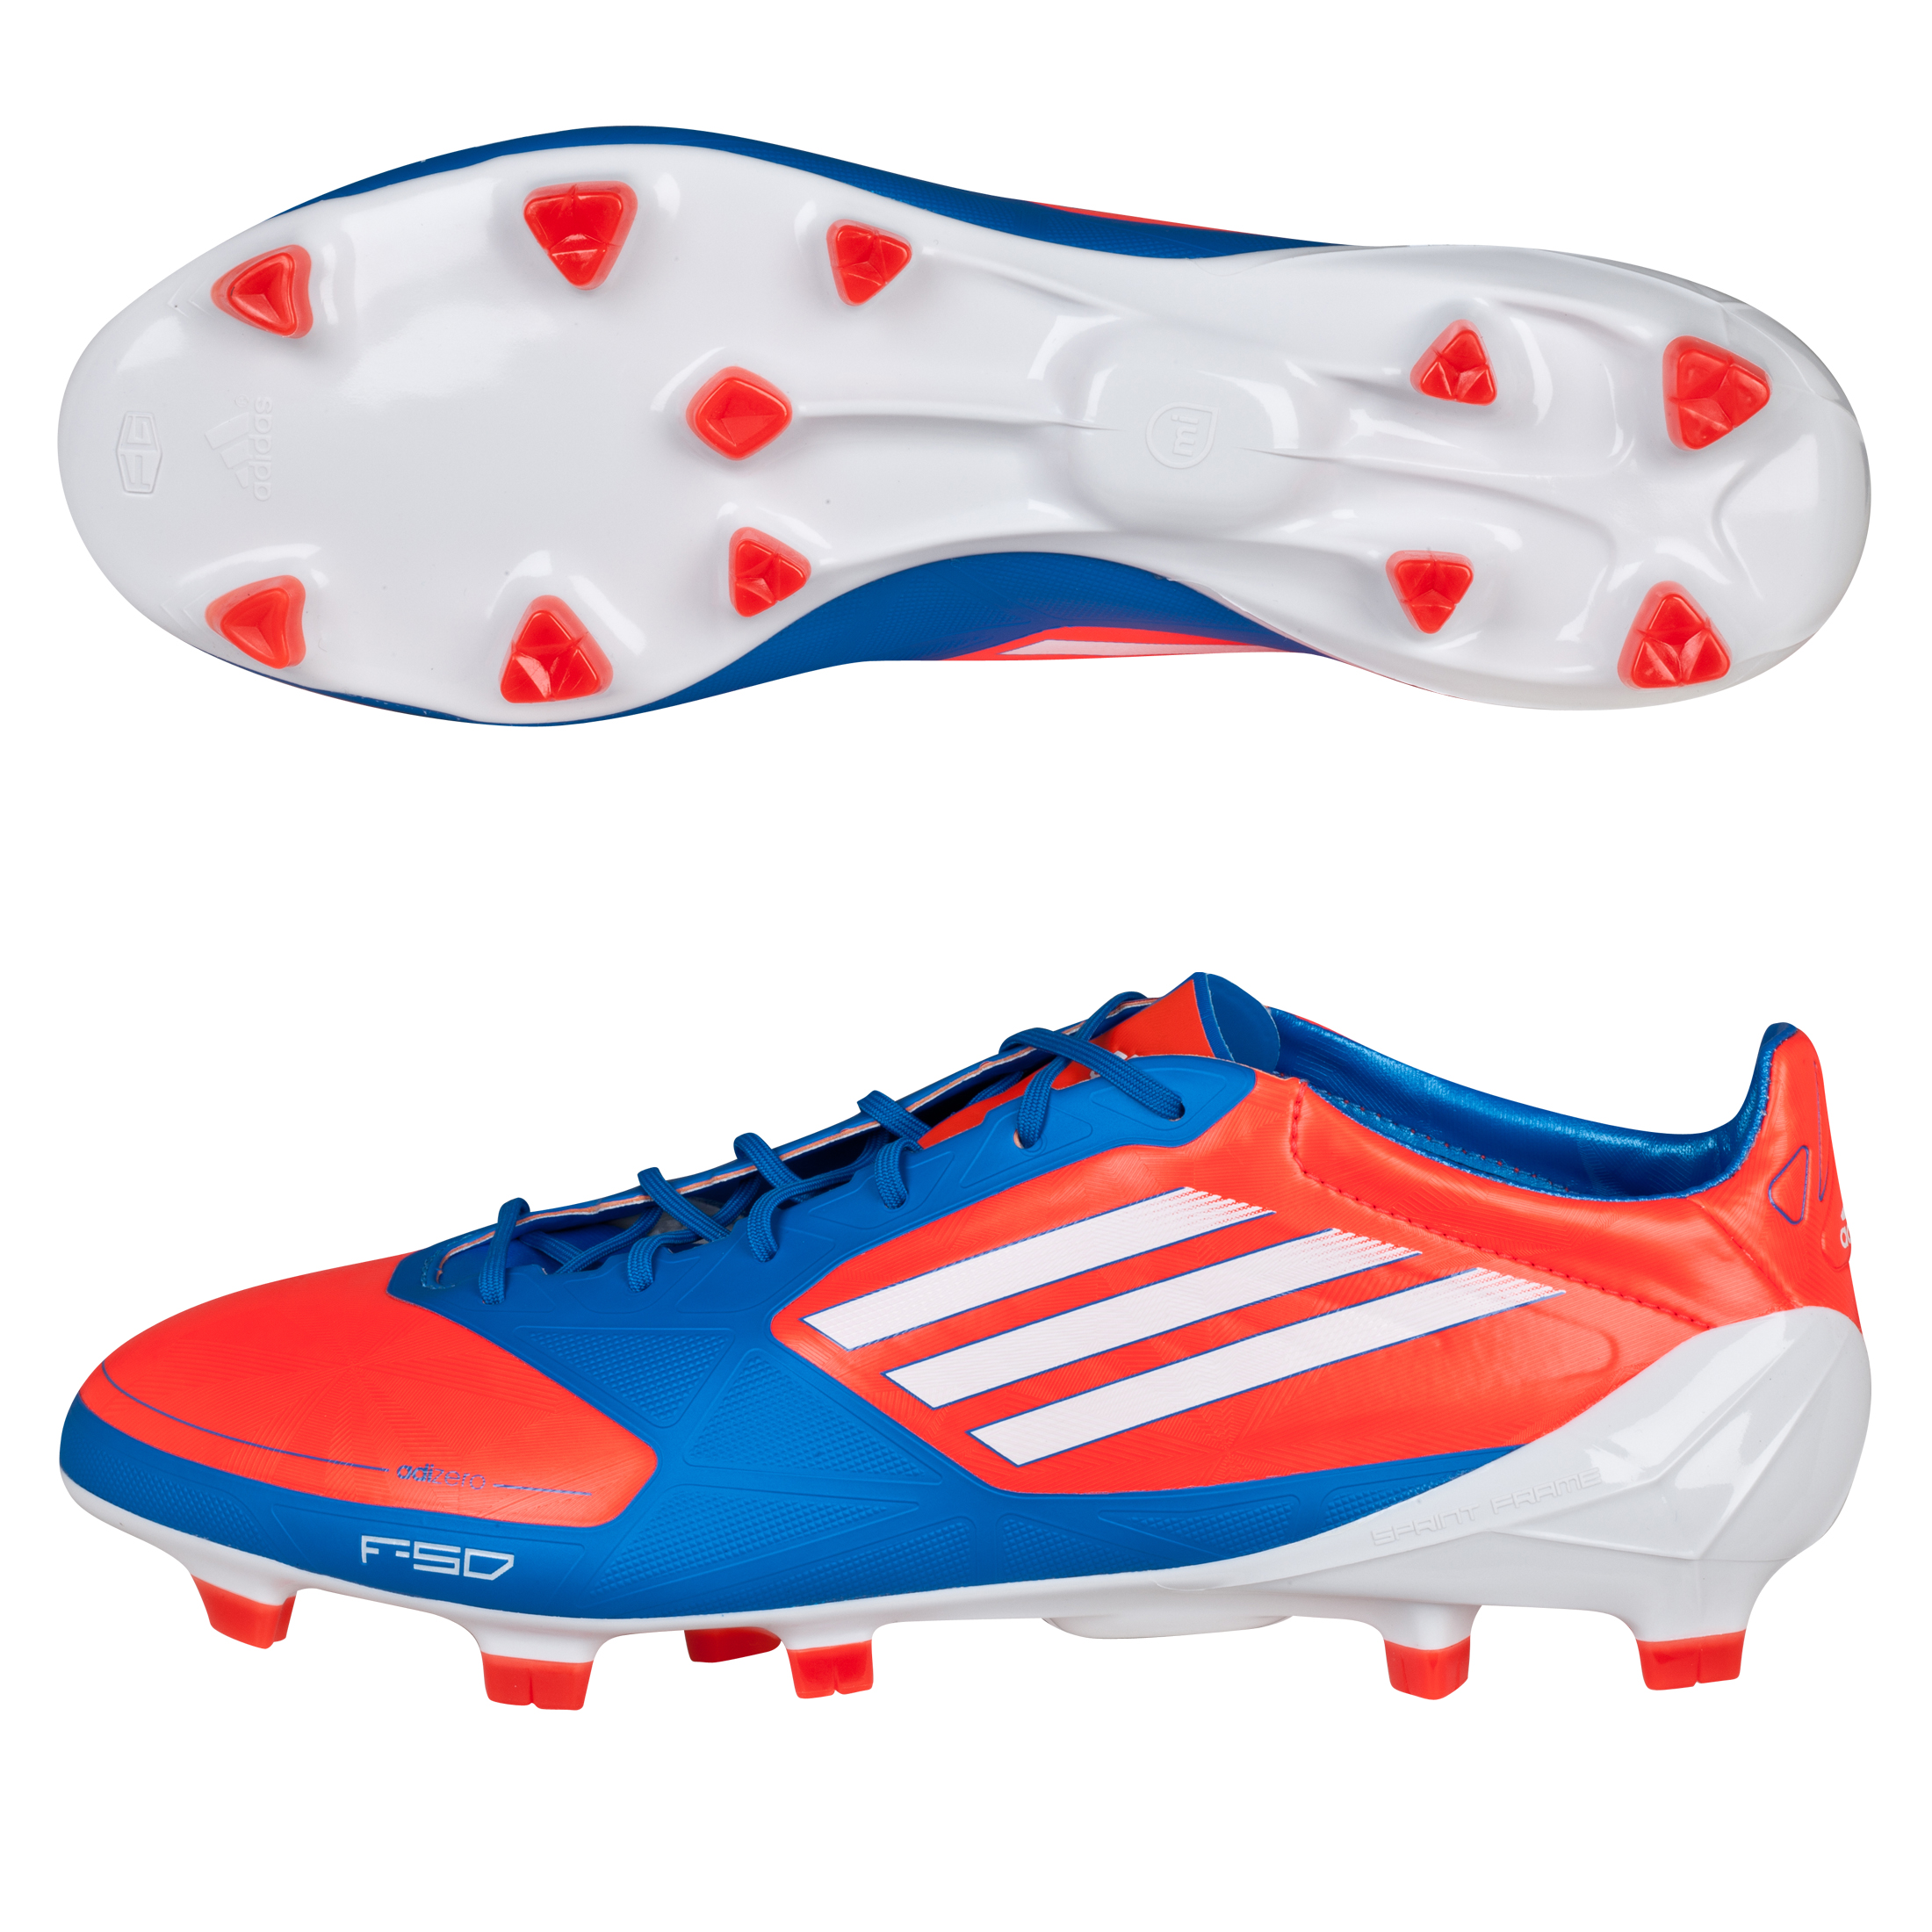 F50 Adizero TRX FG Synthetic Infrared/Running White/Bright Blue